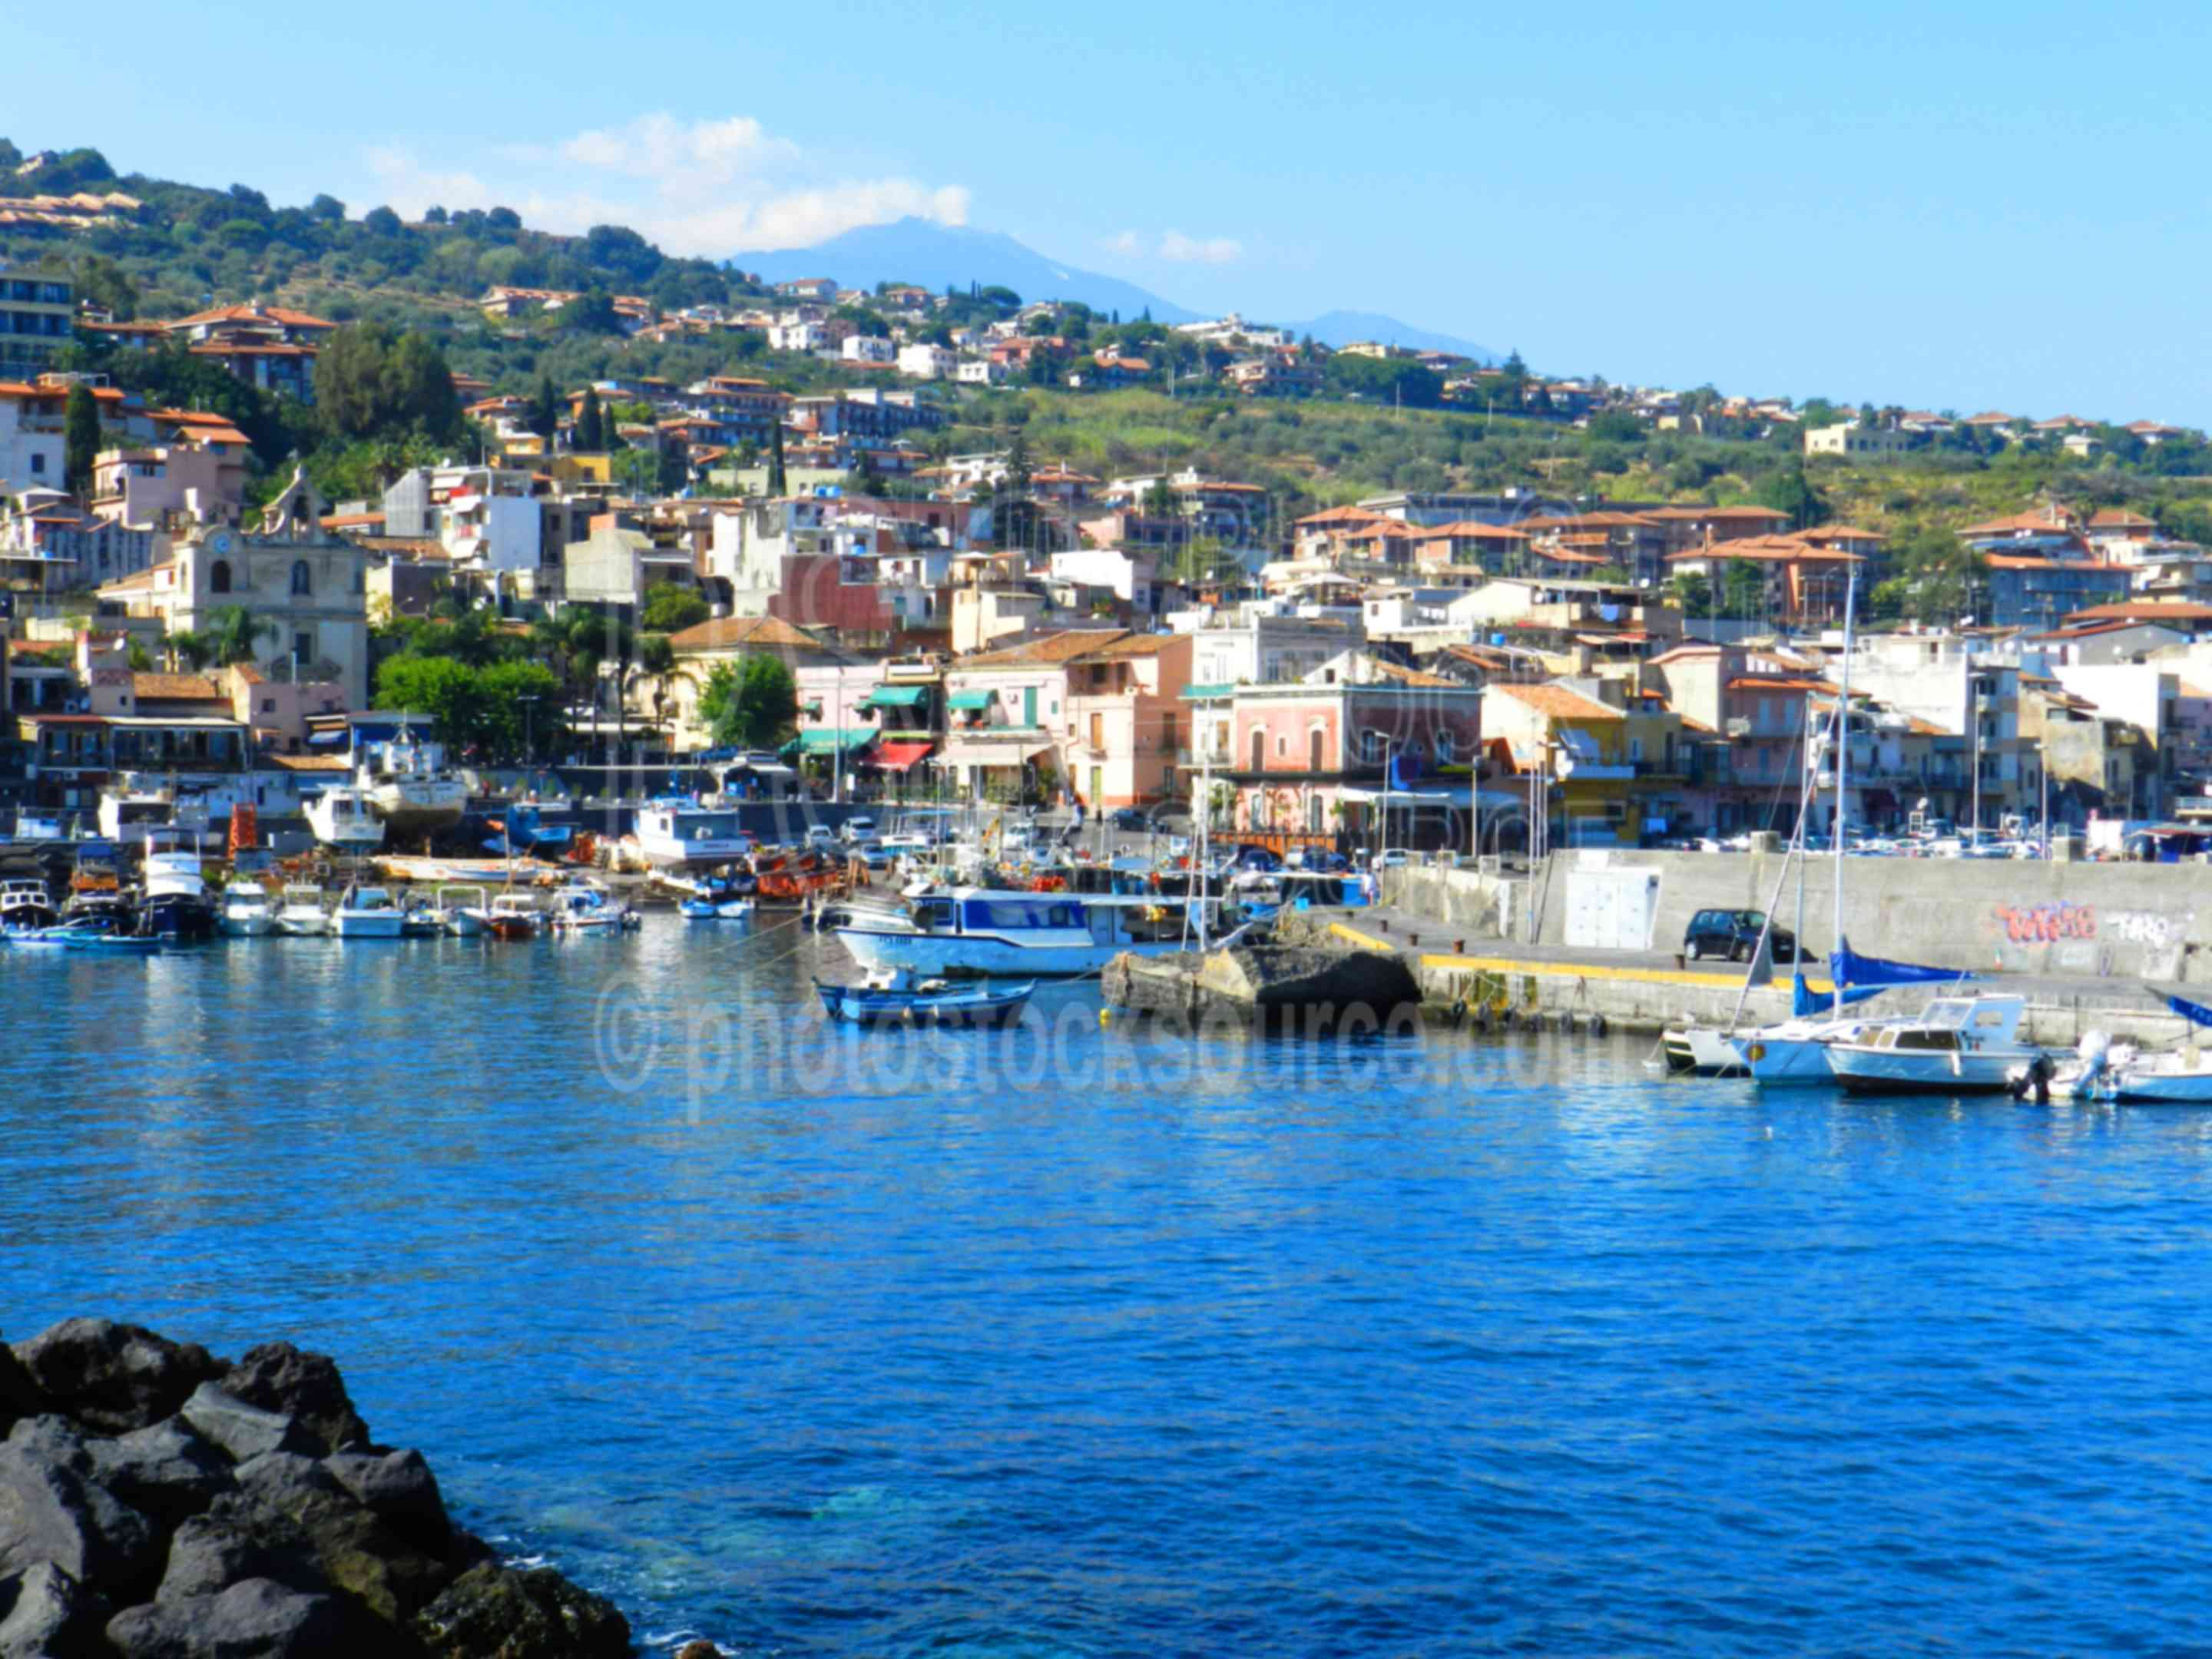 Mt. Etna  Acitrezza Harbor,harbor,fishing,boat,bay,waterfront,mt. etna,volcano,erupting,etnea